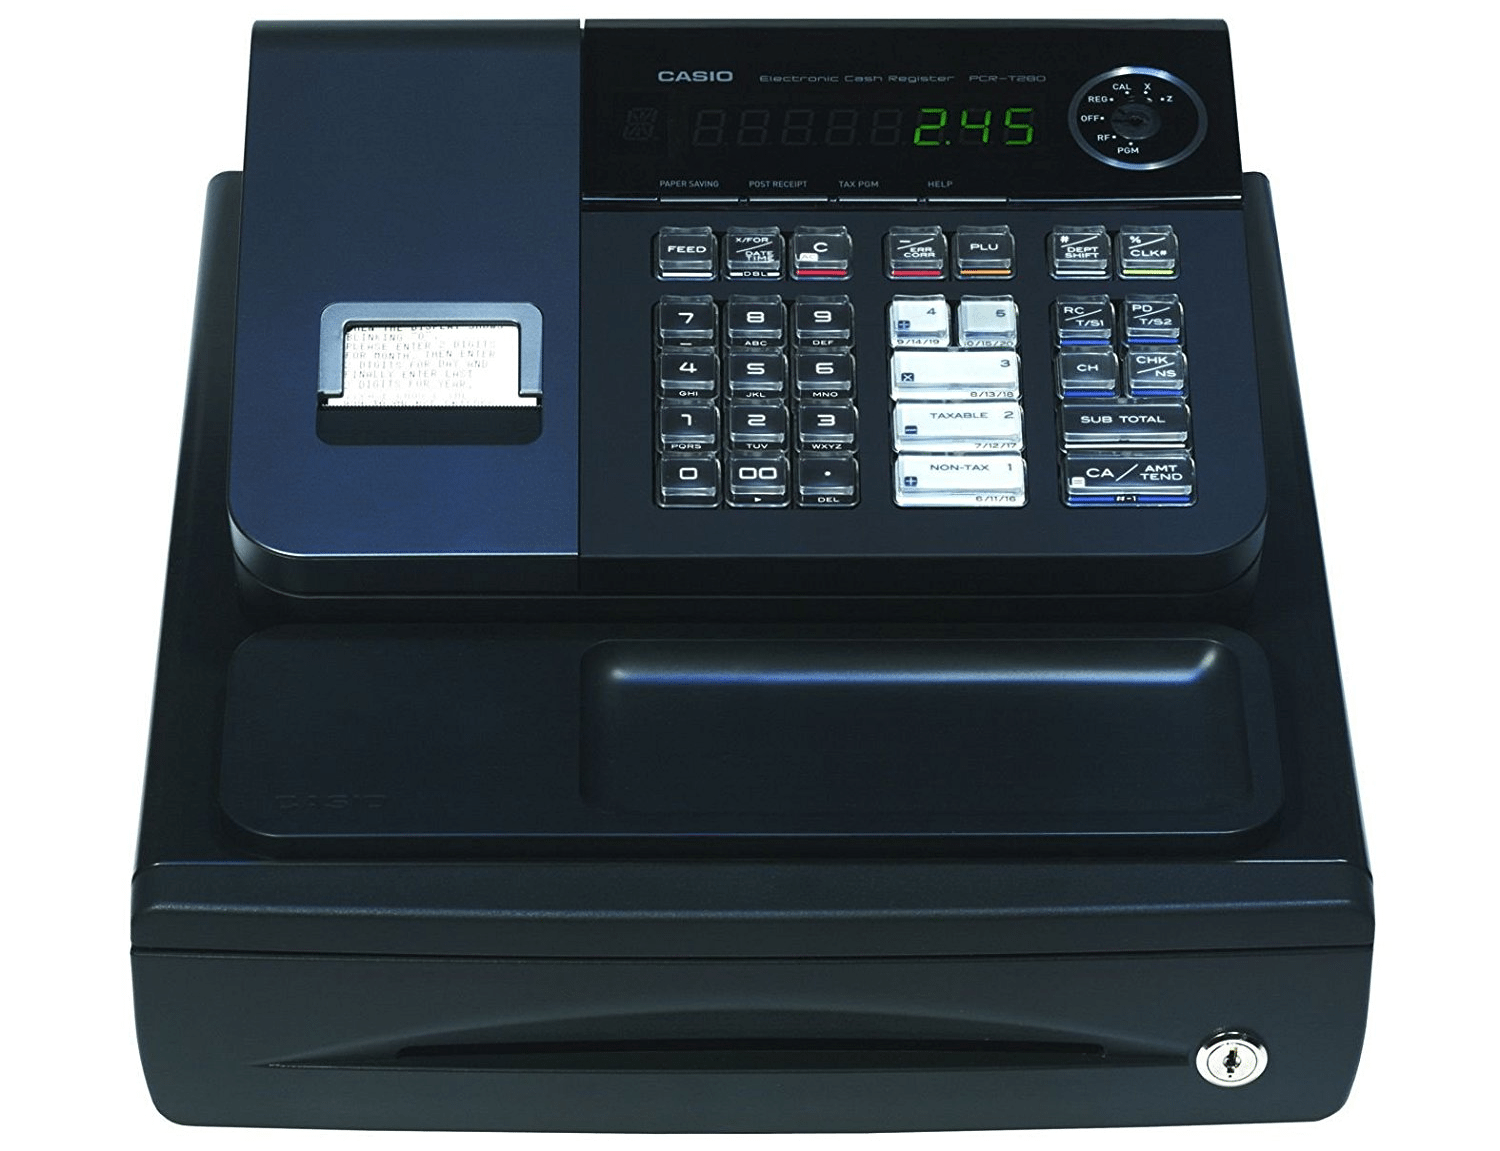 POS Cash Register - when a basic cash register is all you need